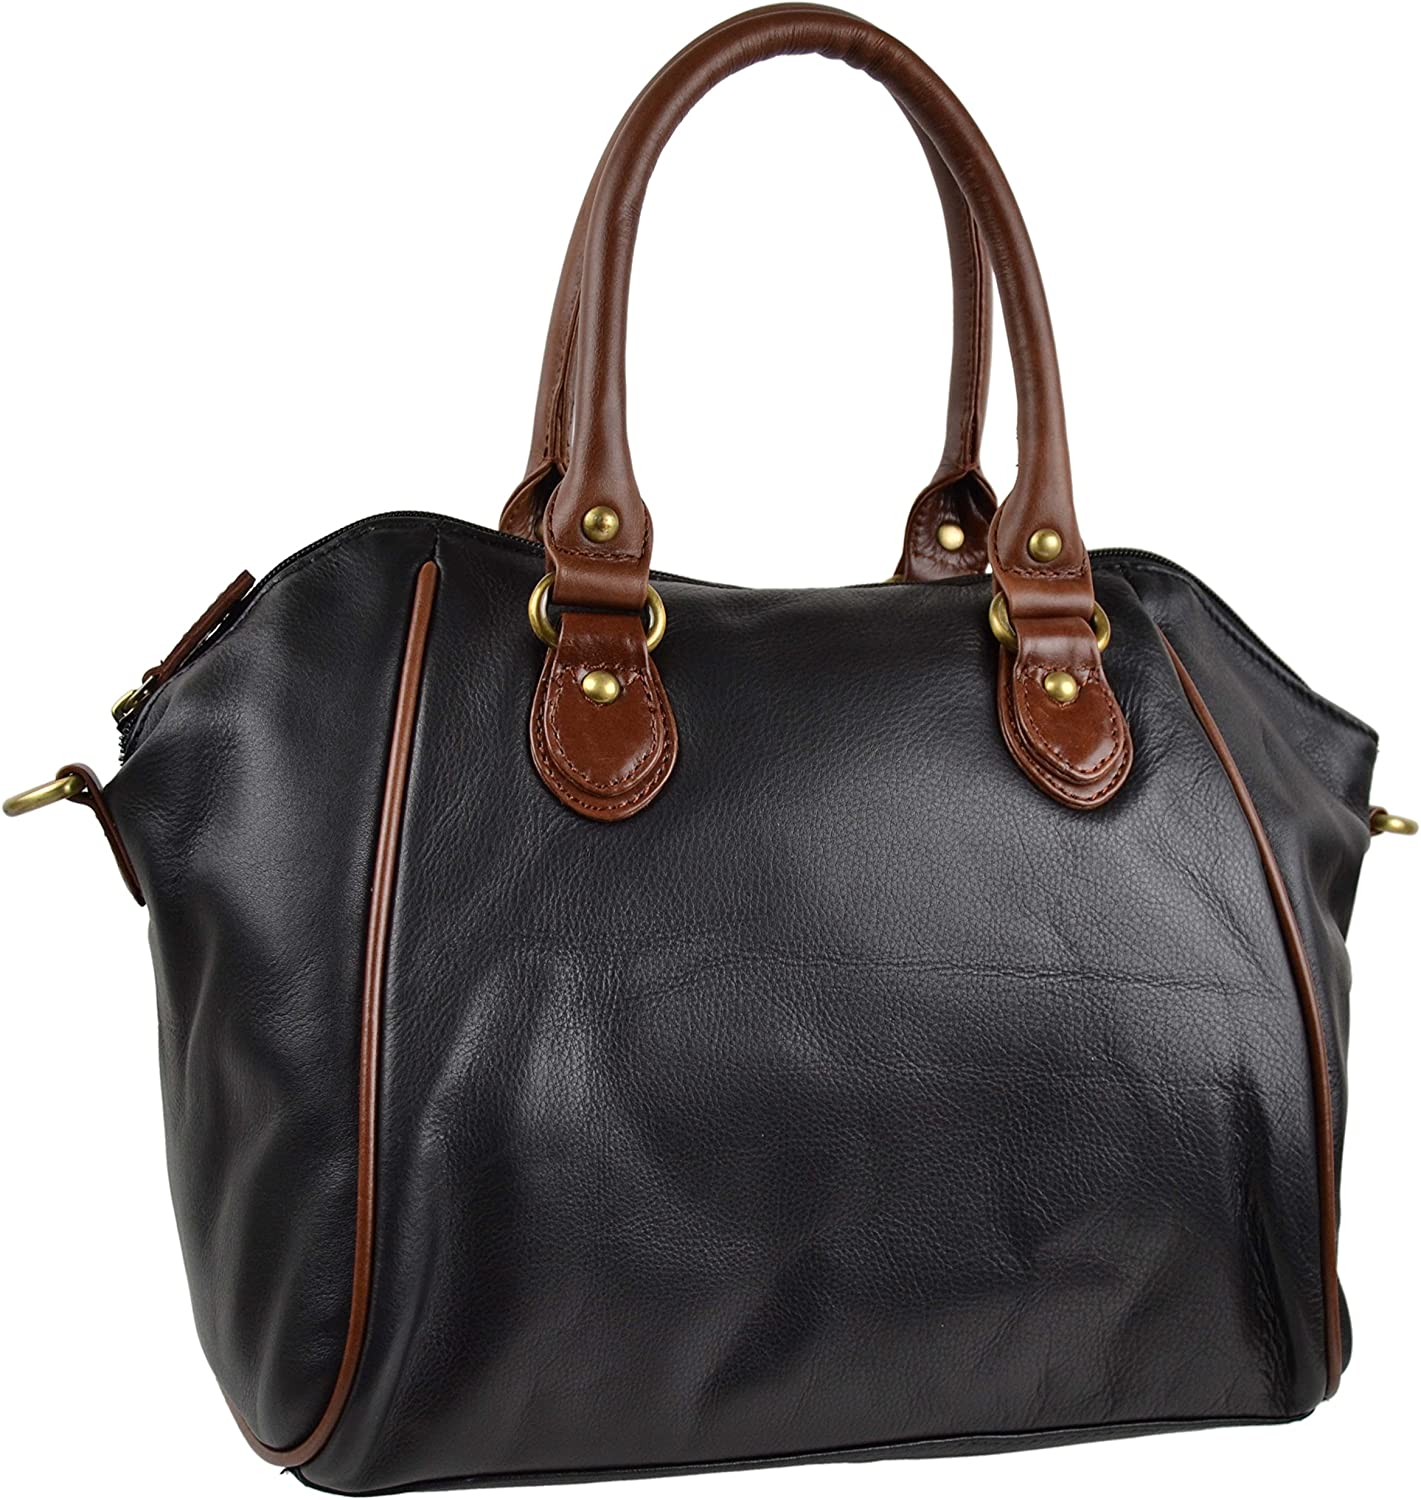 Blousey Brown Women'S Leather Leather Shoulder Bag